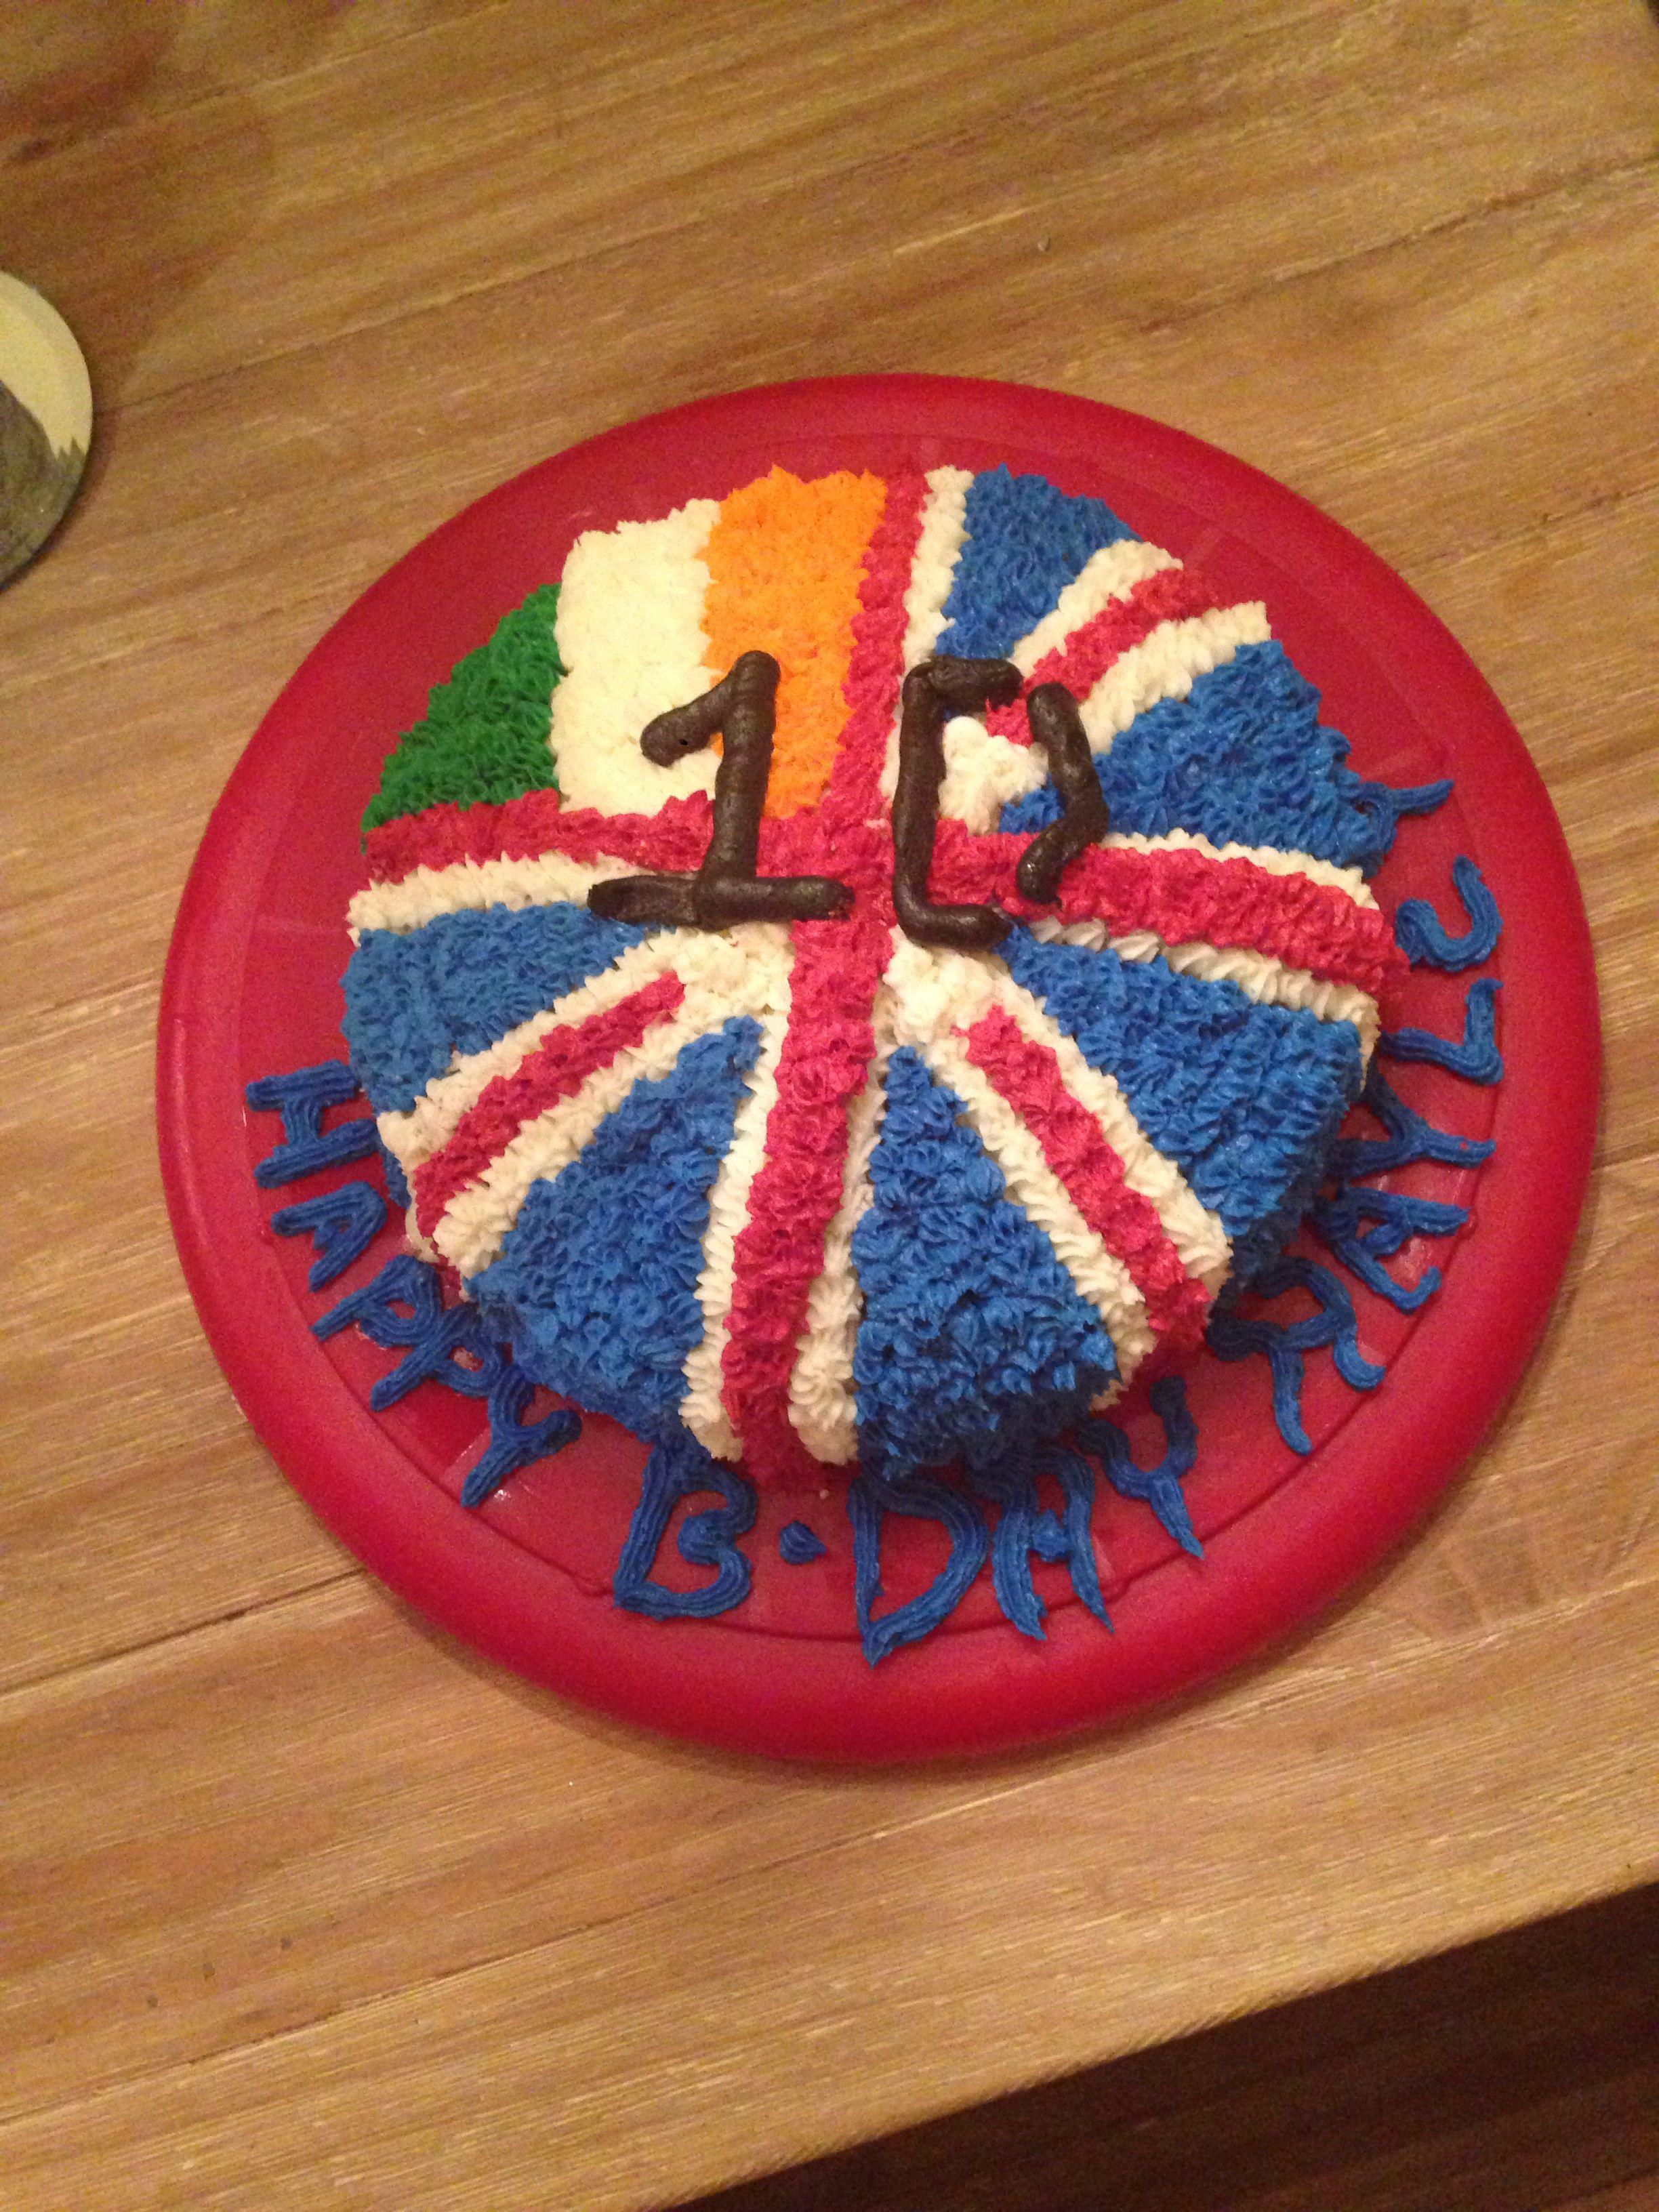 One Direction Cake Get Food Color From Hobby Lobby 1d Cake One Direction Cake Holiday Decor Food Coloring